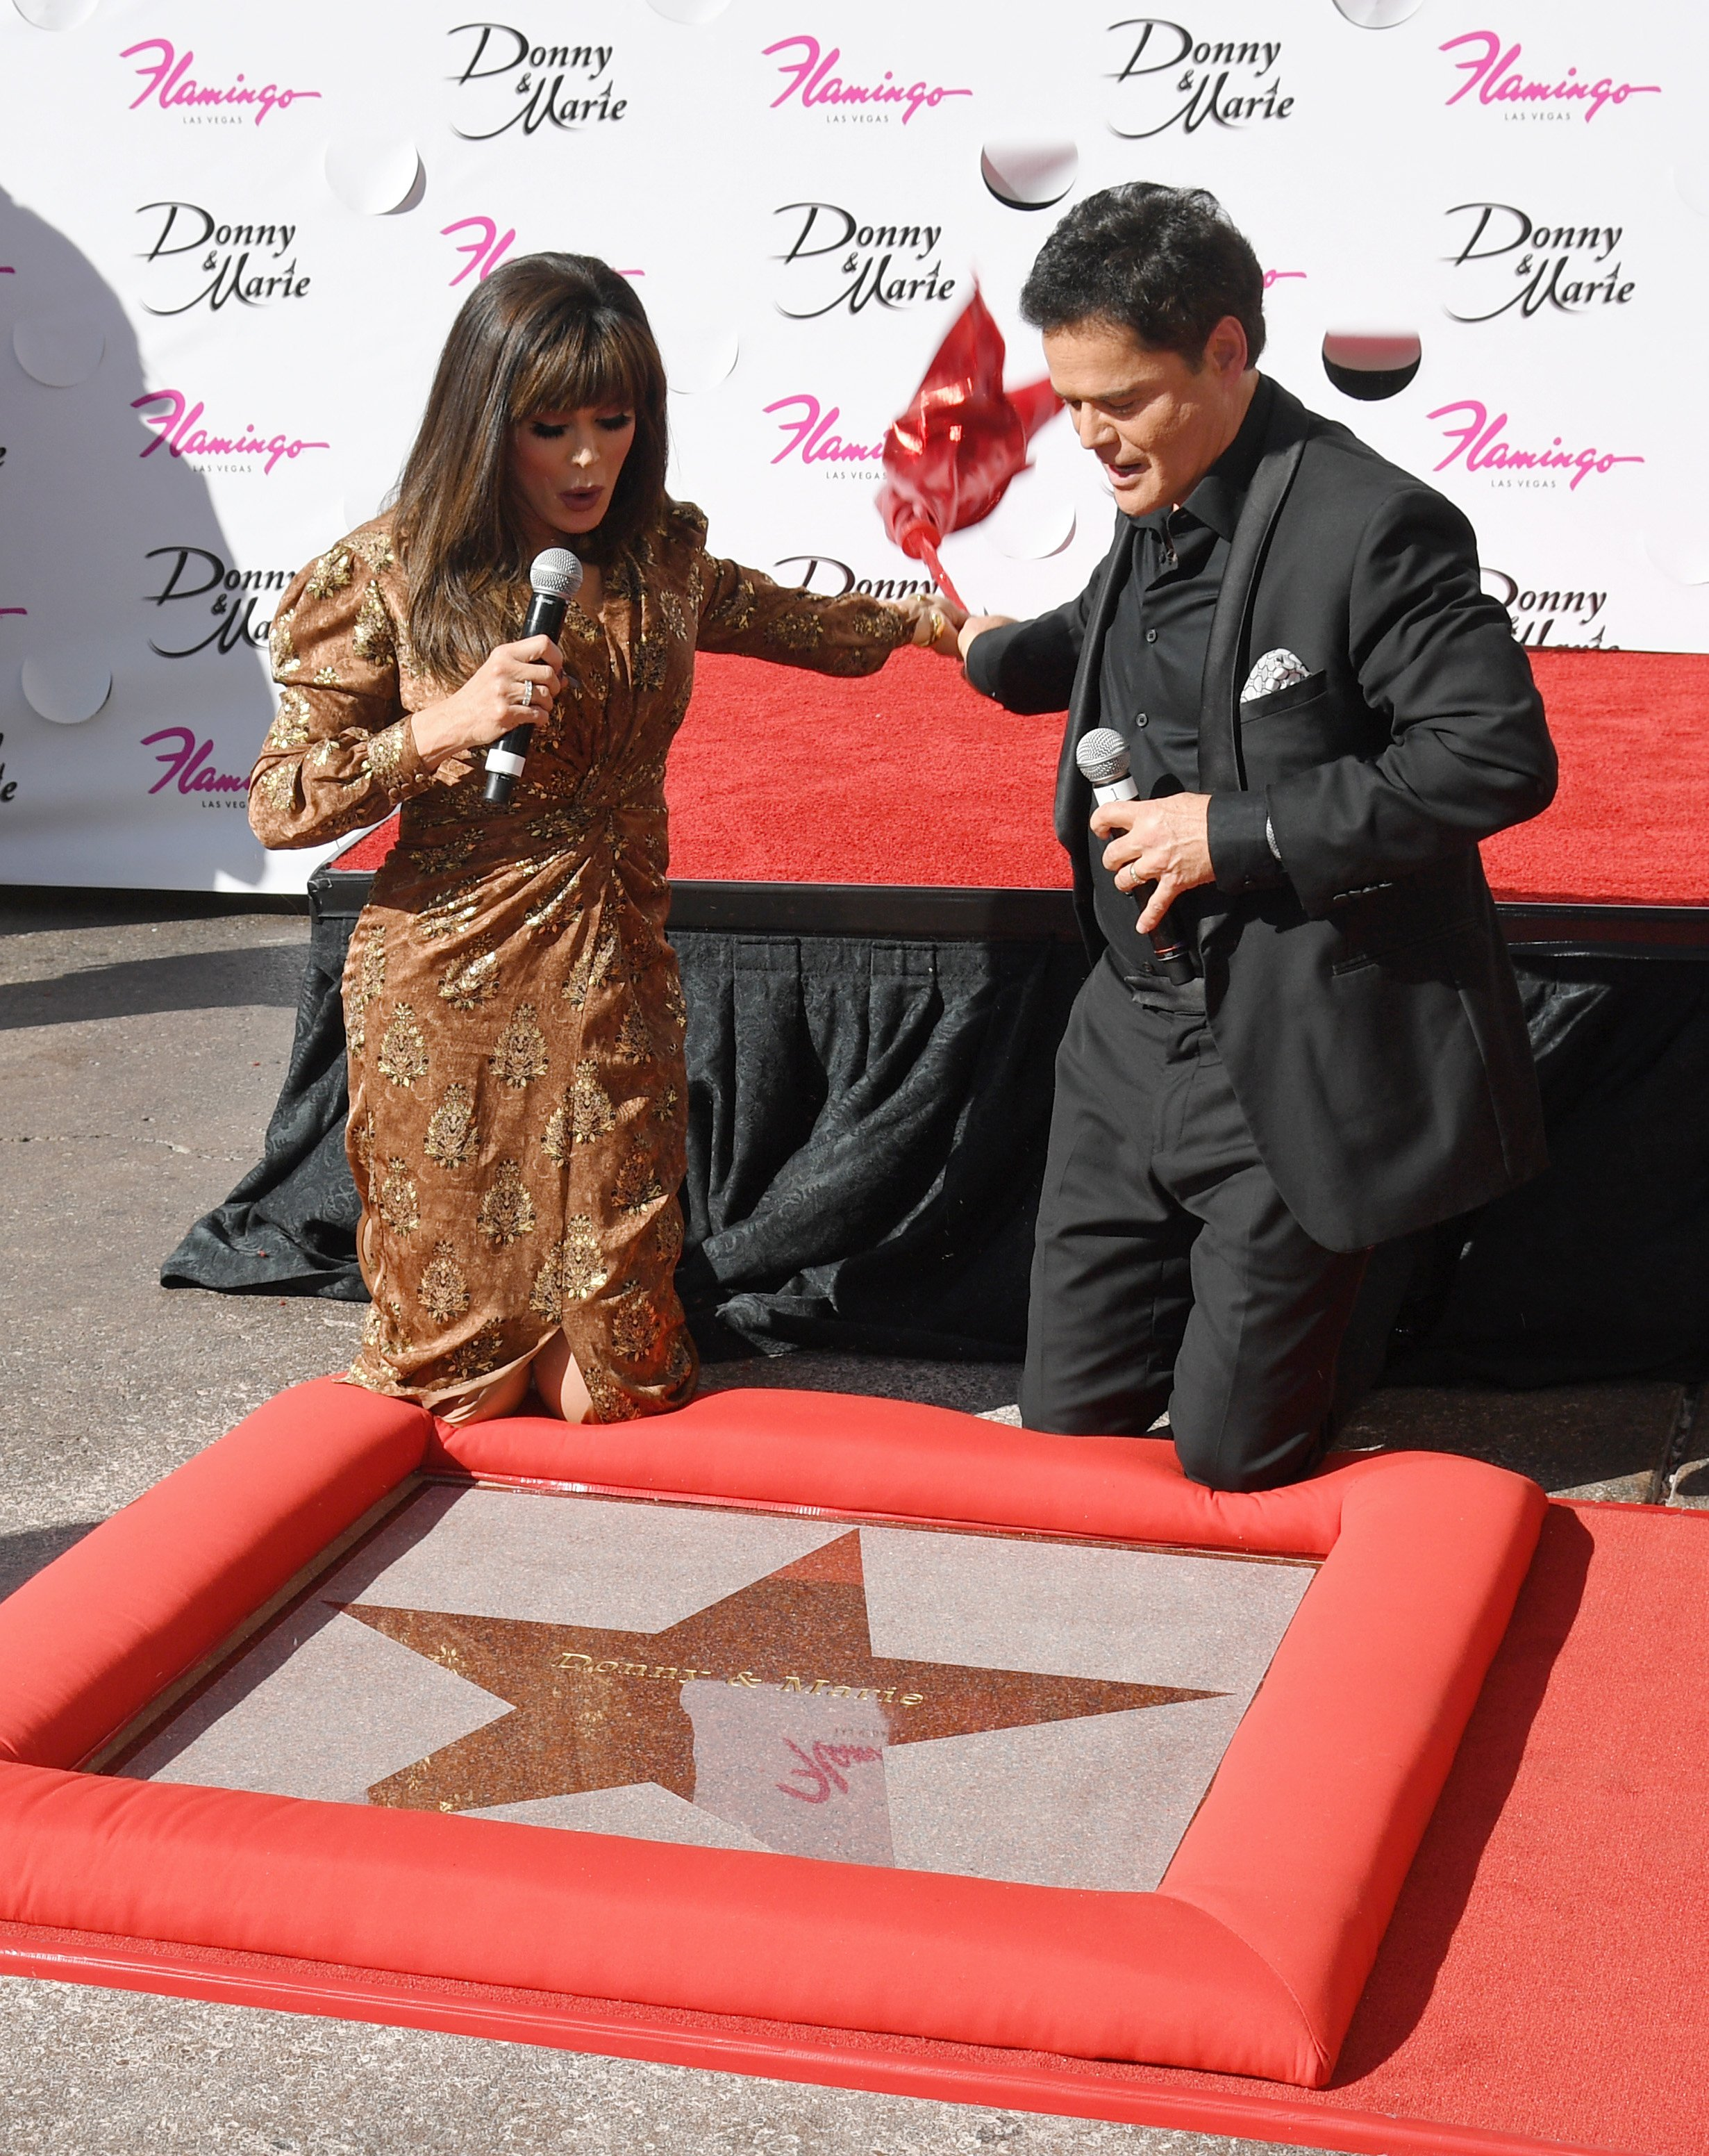 Donny and Marie Osmond unveil their star from the Las Vegas Walk of Stars outside Flamingo Las Vegas on October 4, 2019 in Las Vegas, Nevada   Source: Getty Images